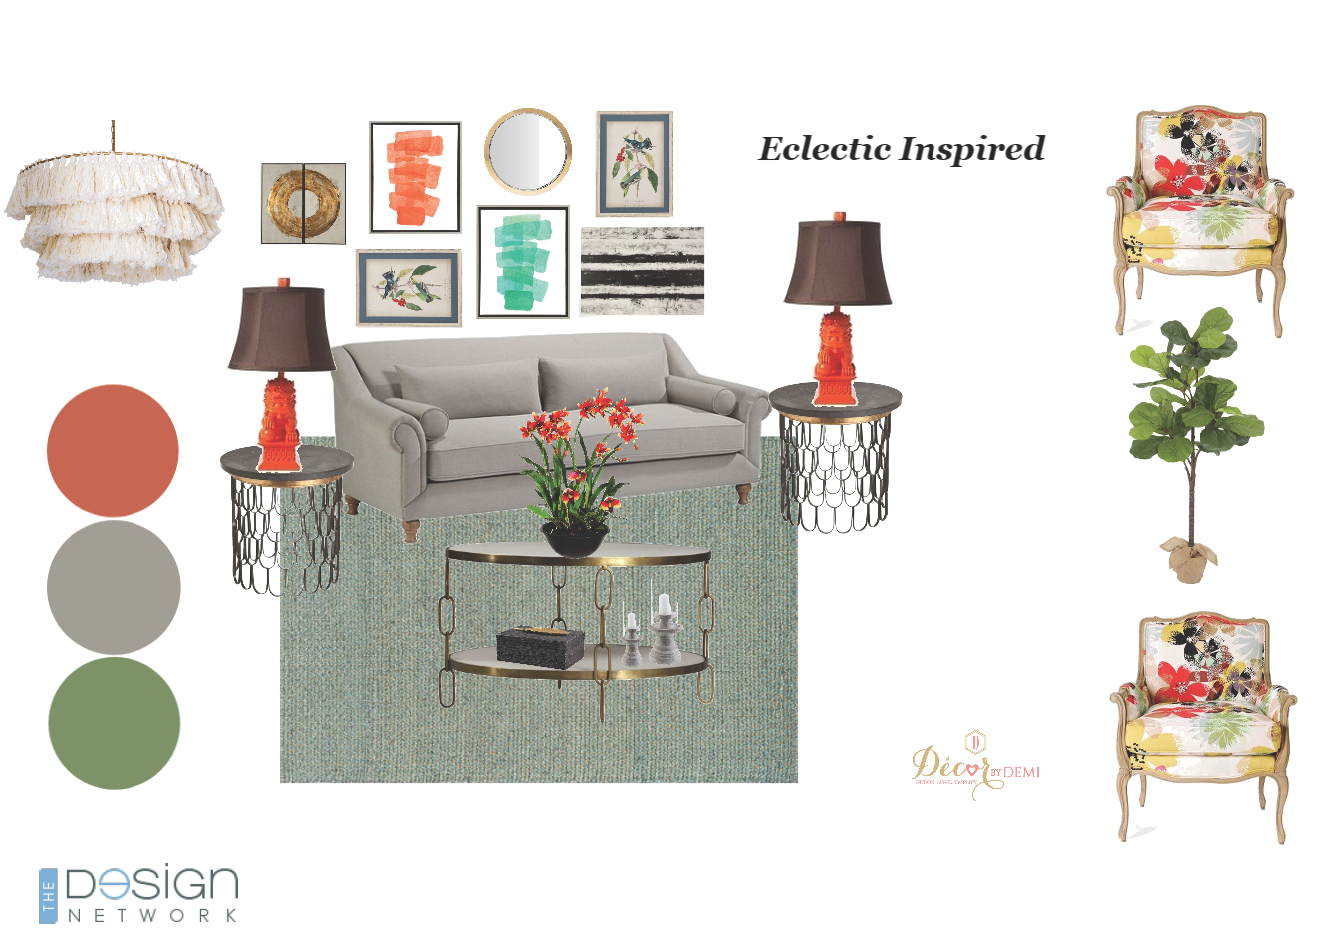 decor_by_demi_boho_eclectic_interior_design.png